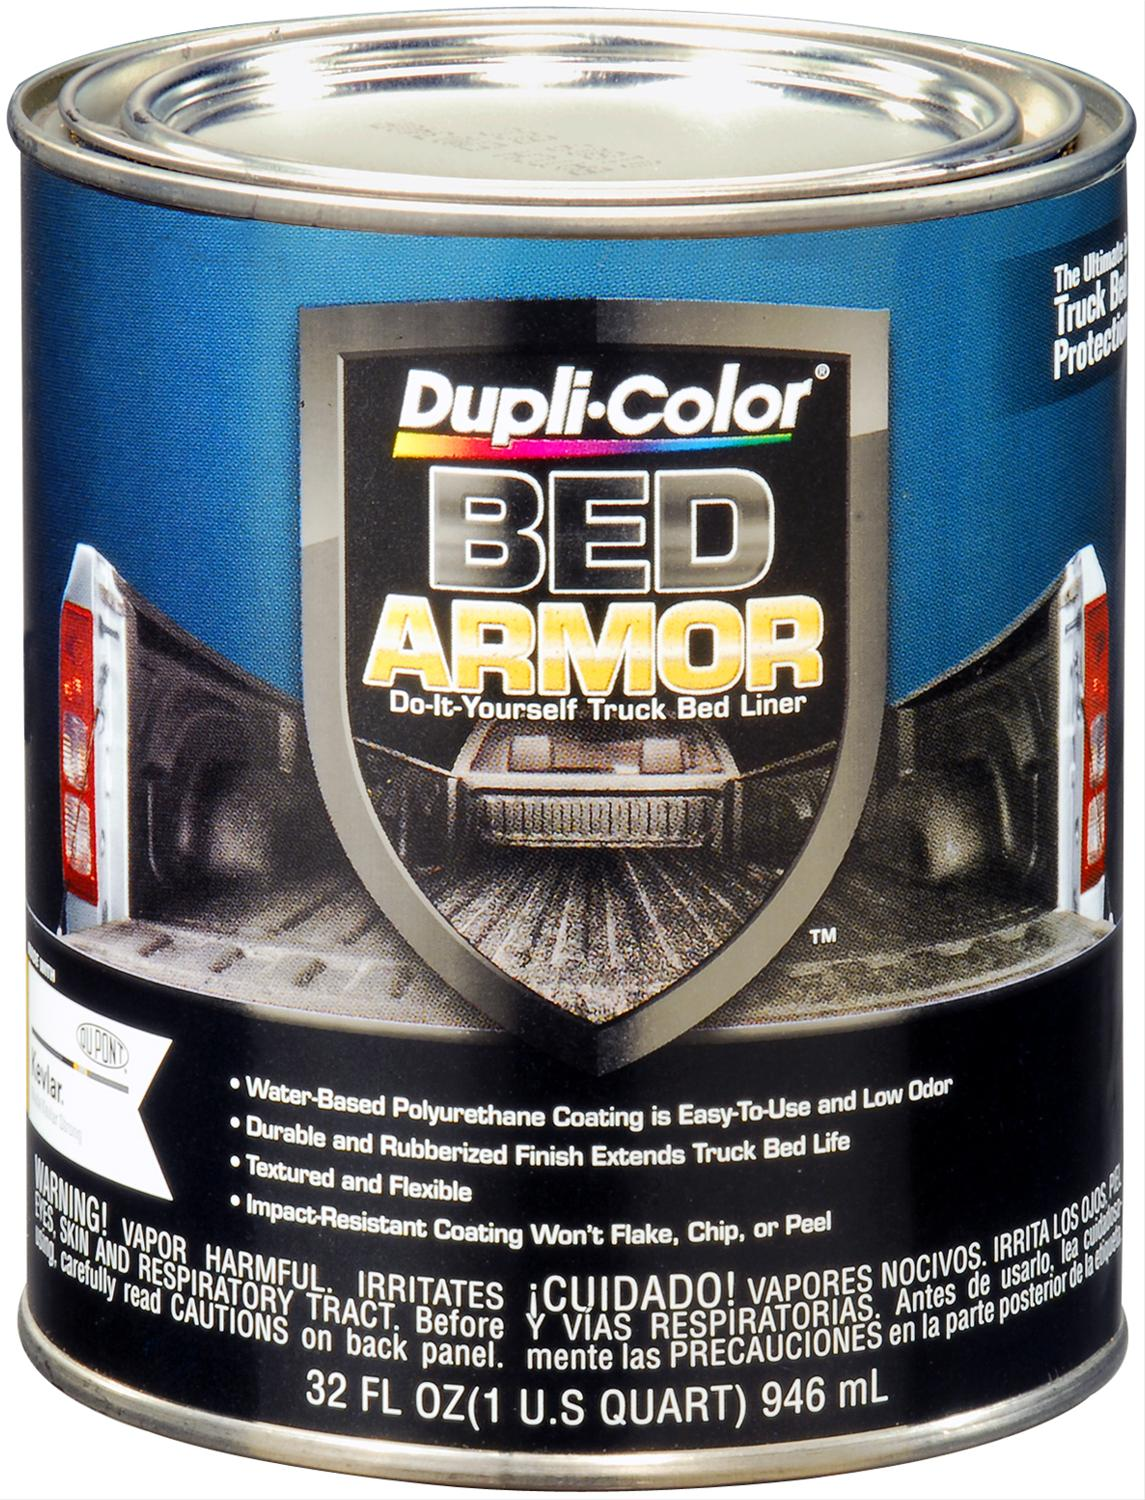 Dupli color bed armor diy truck bed liner with kevlar 1 quart ebay dupli color bed armor diy truck bed liner with kevlar 1 quart solutioingenieria Choice Image